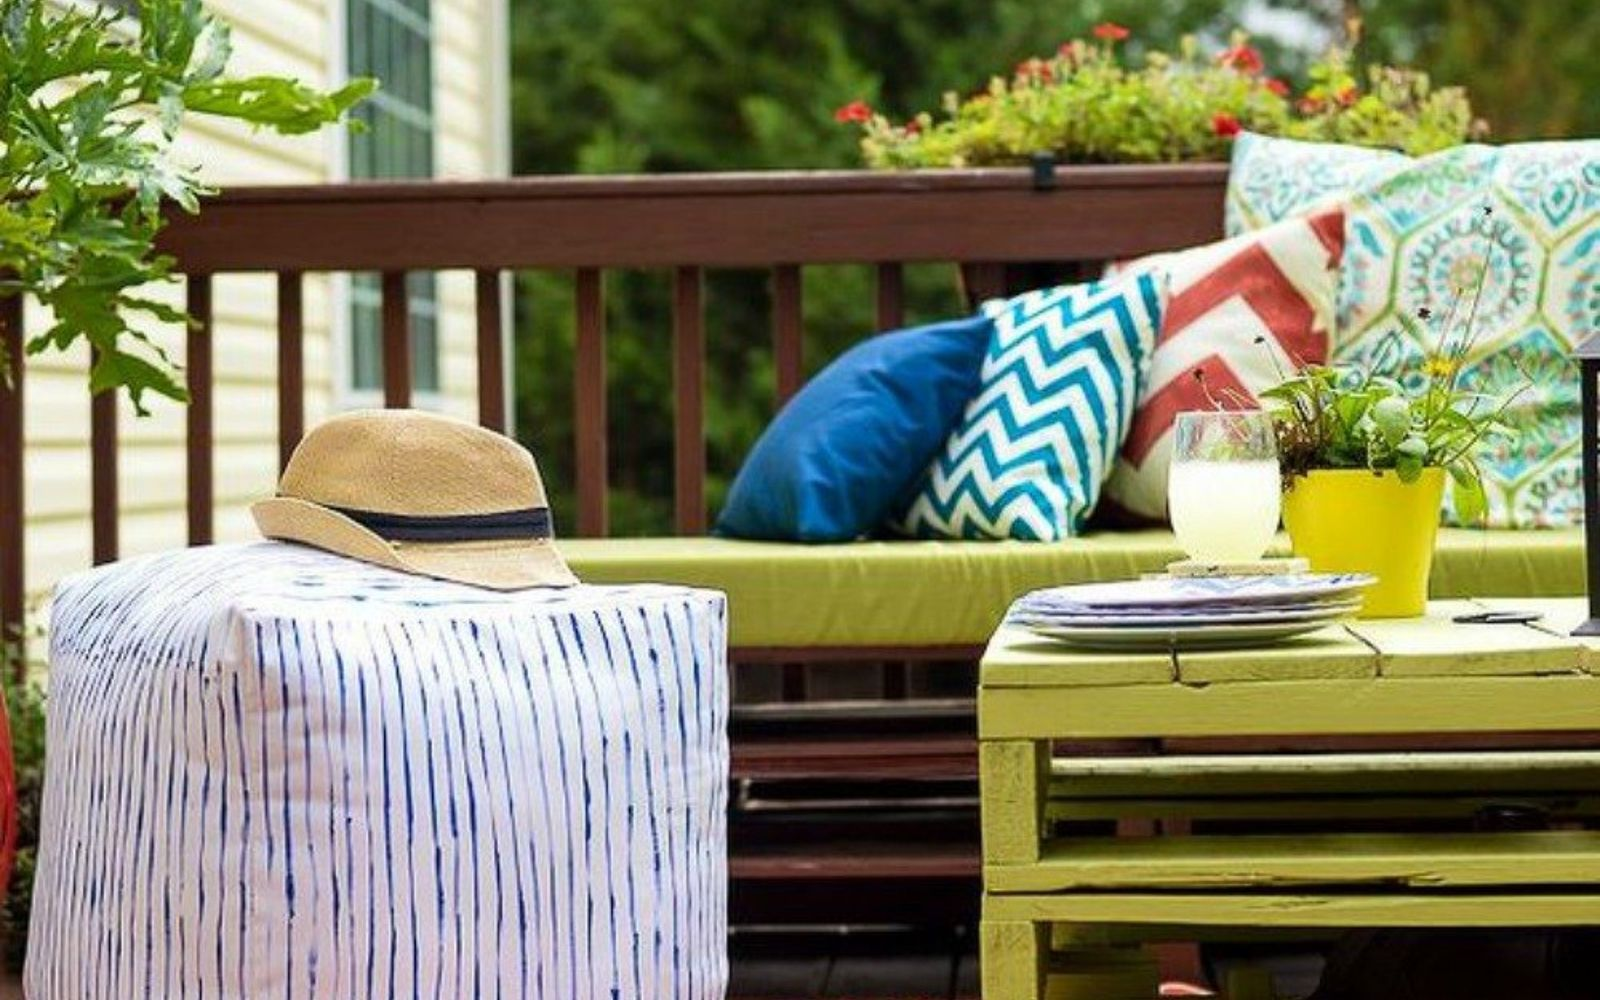 s 12 gorgeous ottoman ideas that will make you want to put your feet up, painted furniture, Pick your favorite fabric and fill it